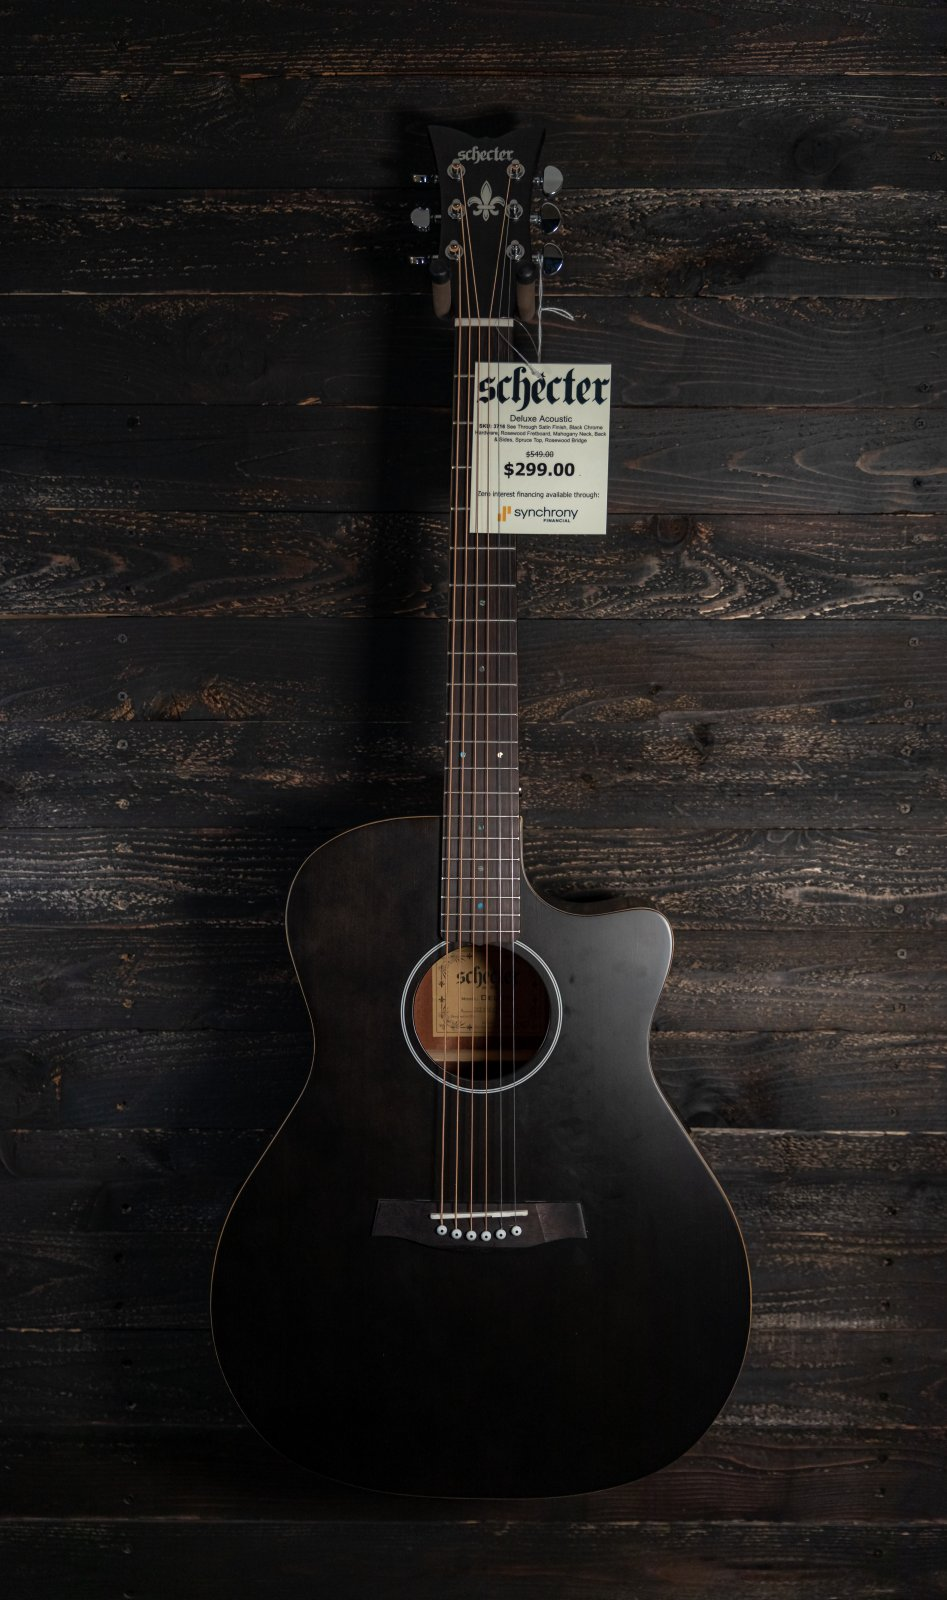 Schecter Deluxe Acoustic Satin See Thru